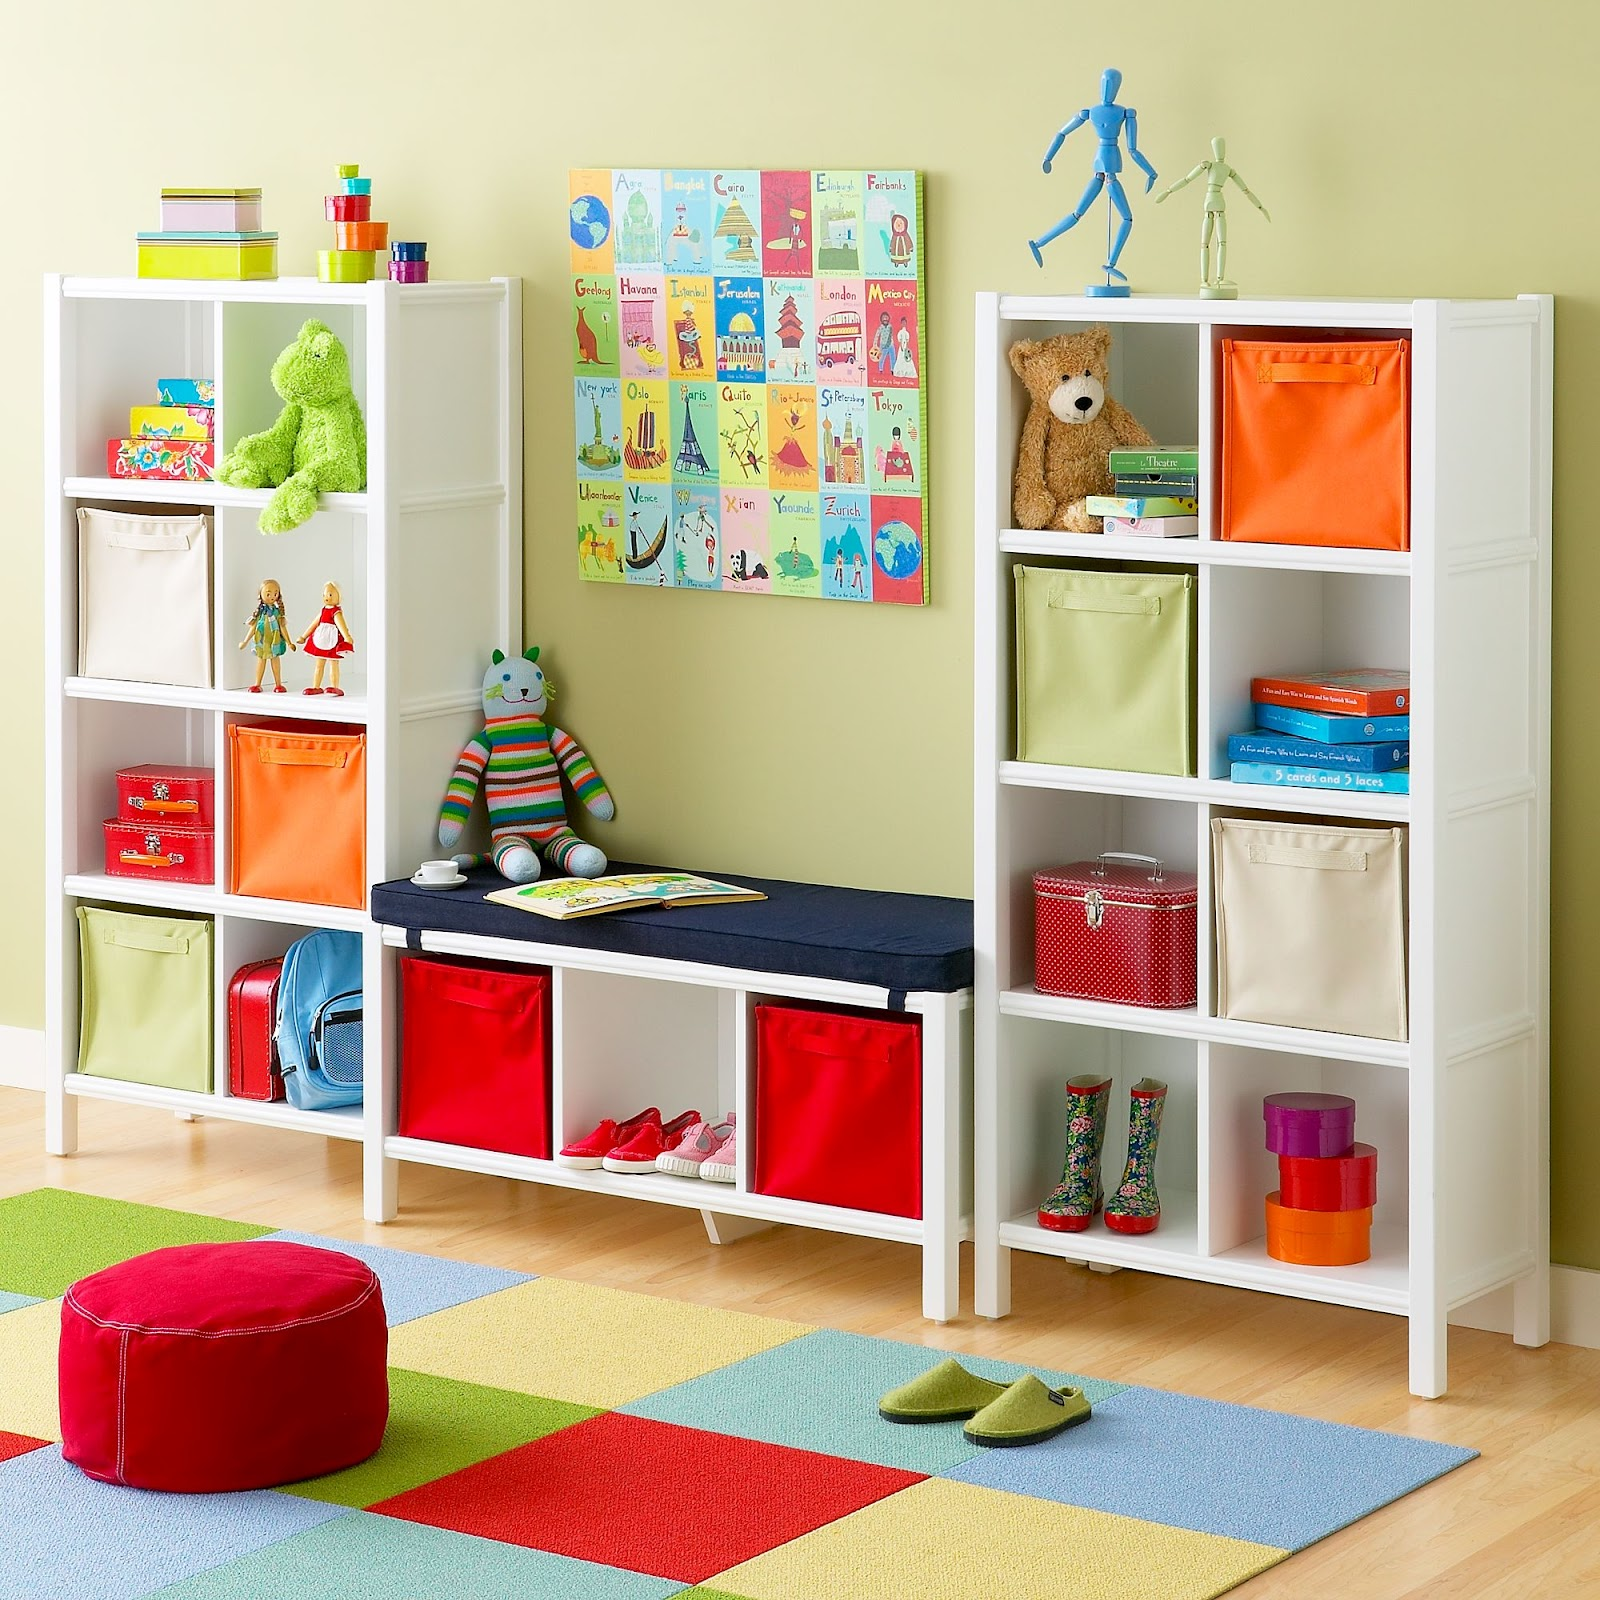 Child Room Ideas: Kids Playroom Designs & Ideas